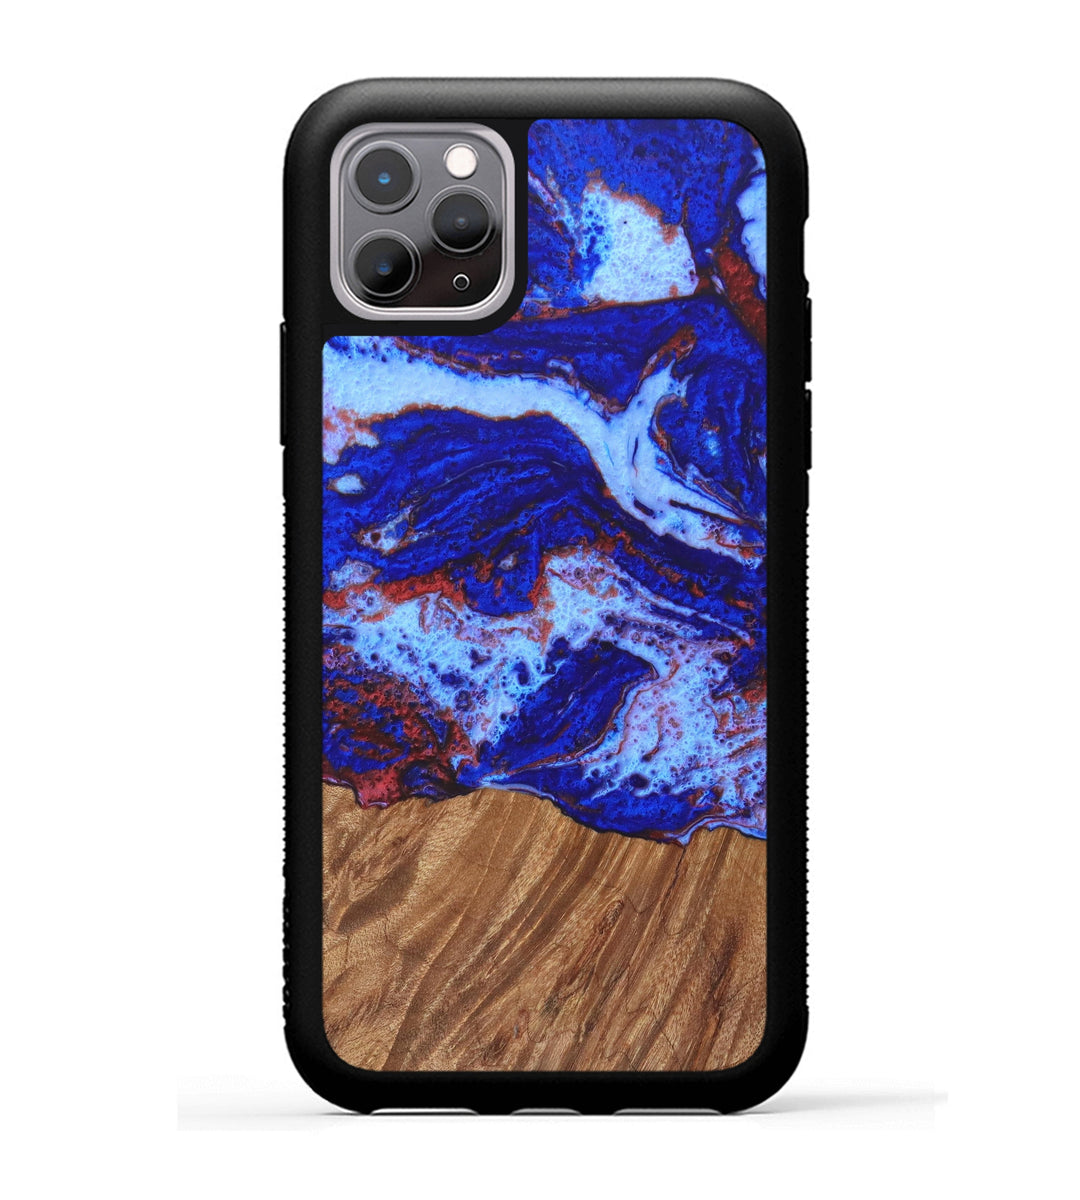 iPhone 11 Pro Wood+Resin Case - Jennette (Blue & Red, 334396)